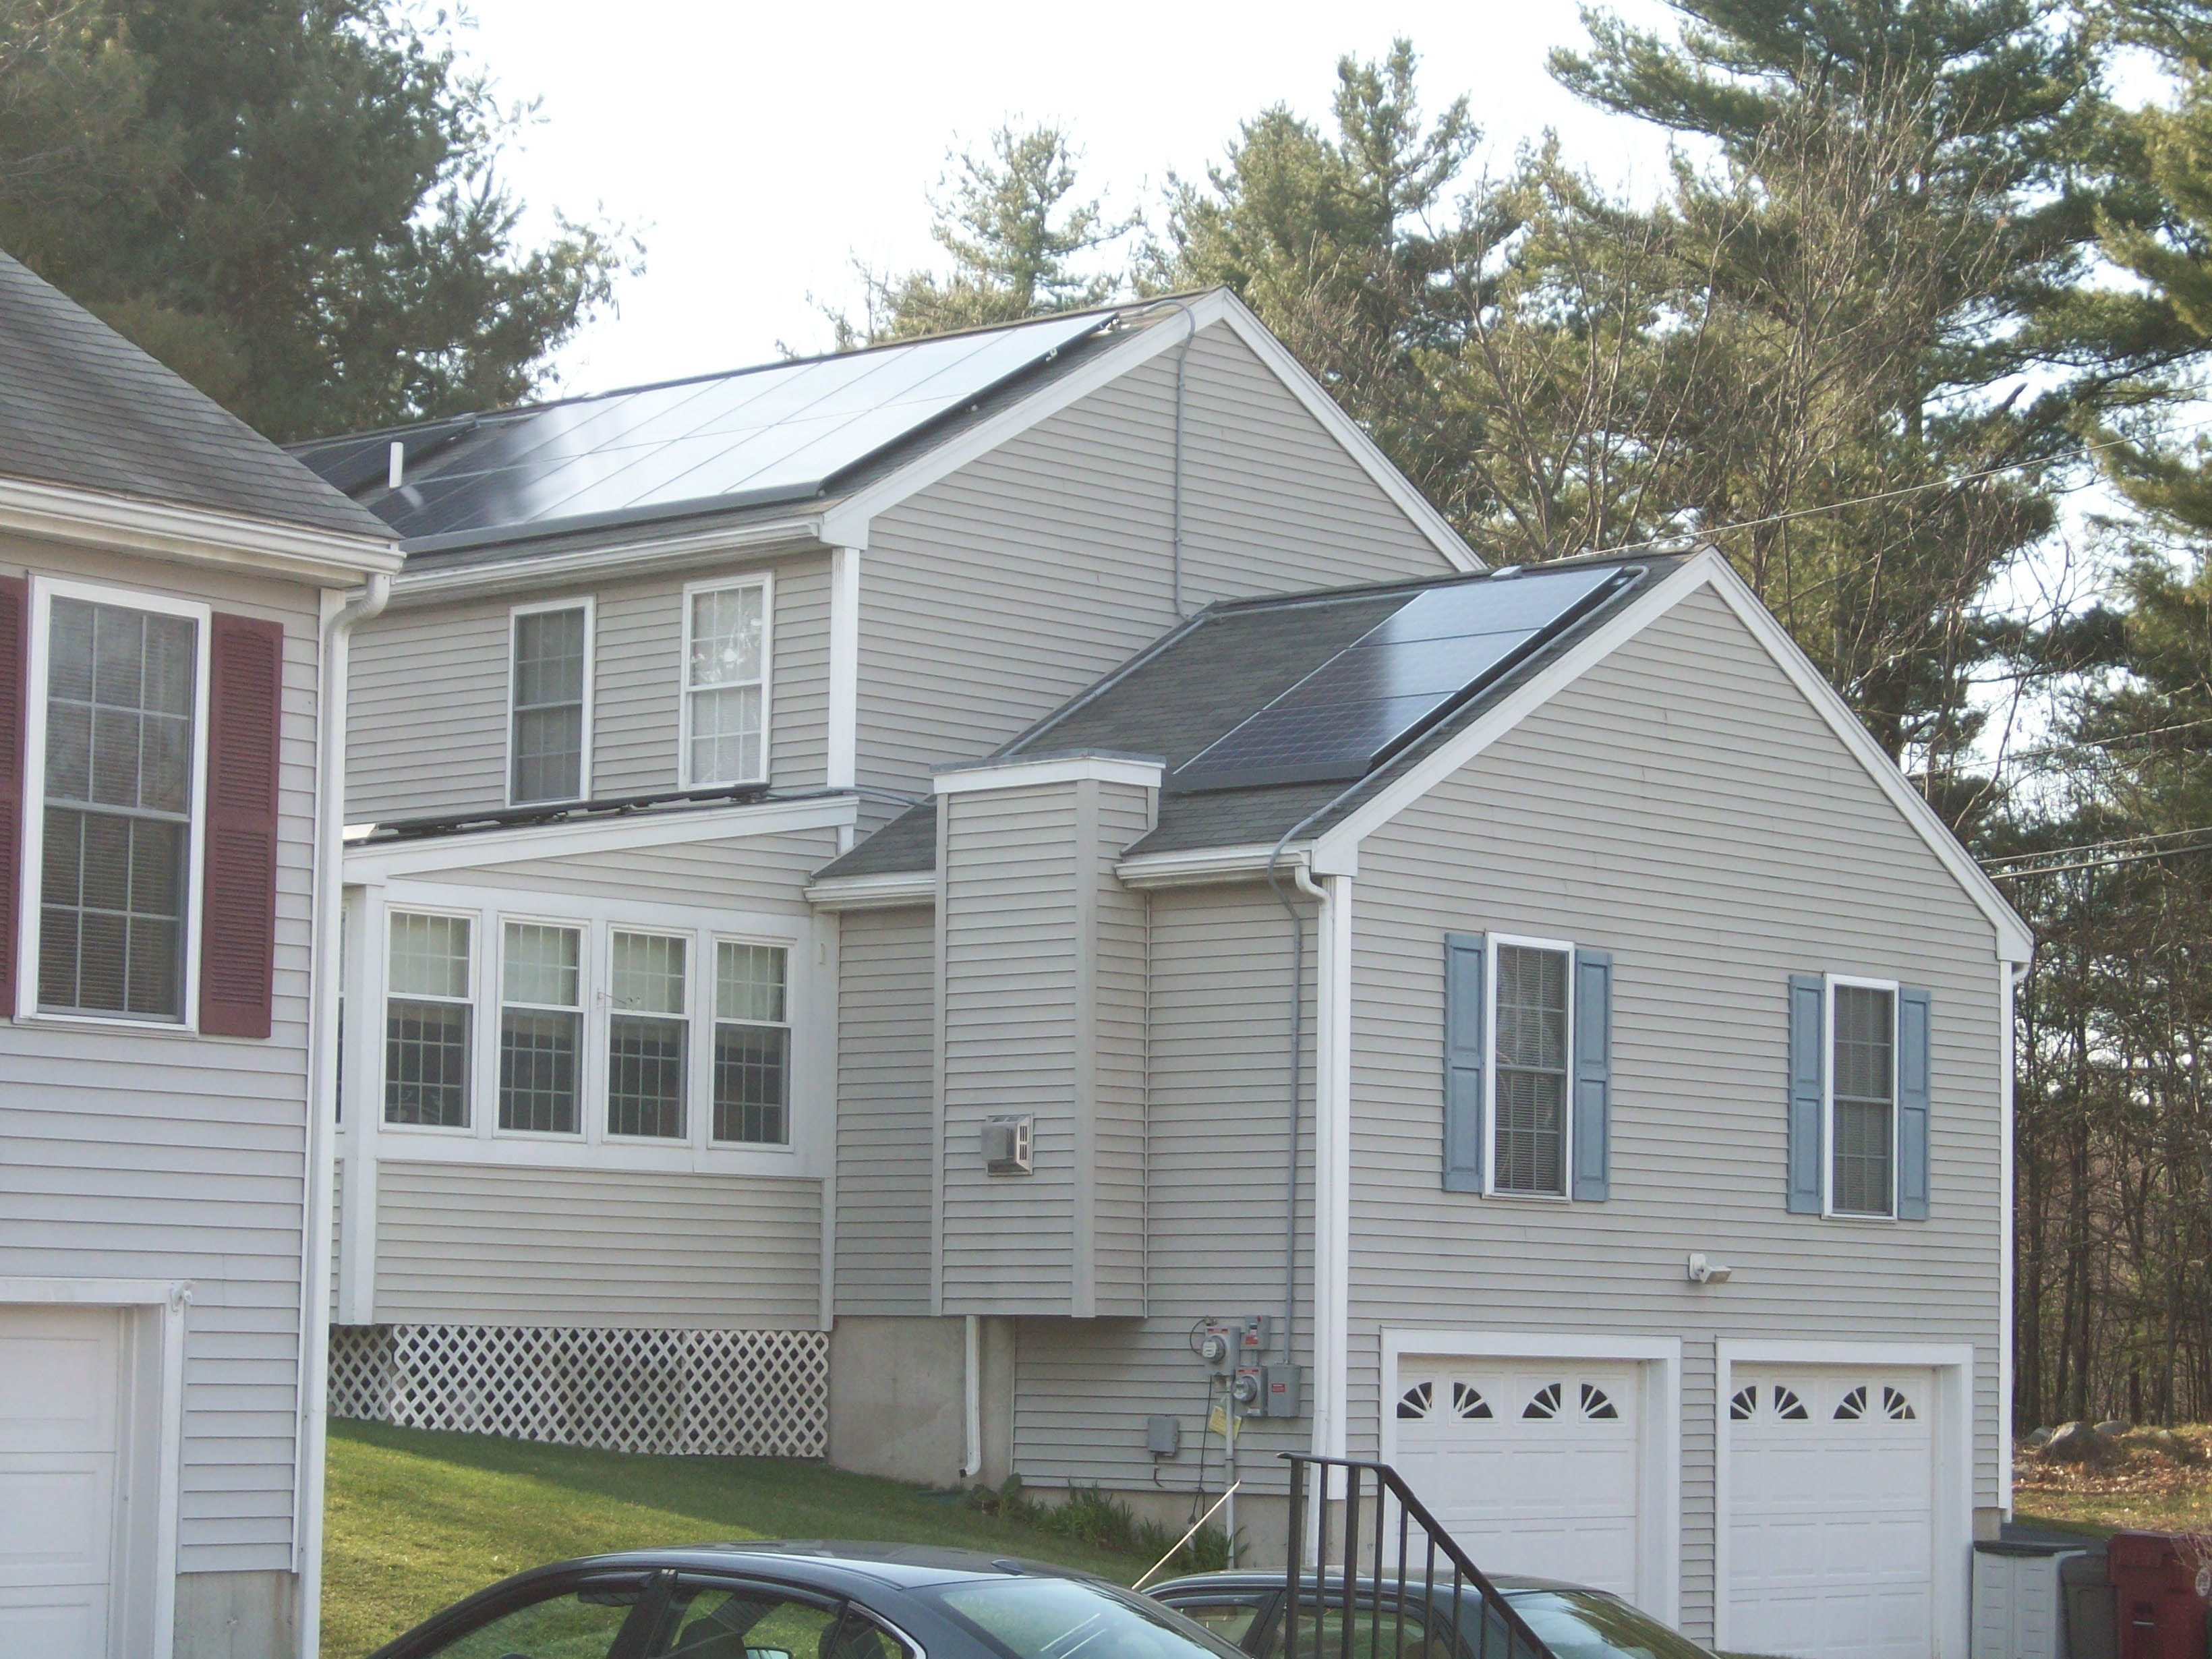 Good Bad And Ugly Solar Installations The Energy Miser Wiring House To Detached Garage Along With Electrical Diagram Lowell Spring 2013 2